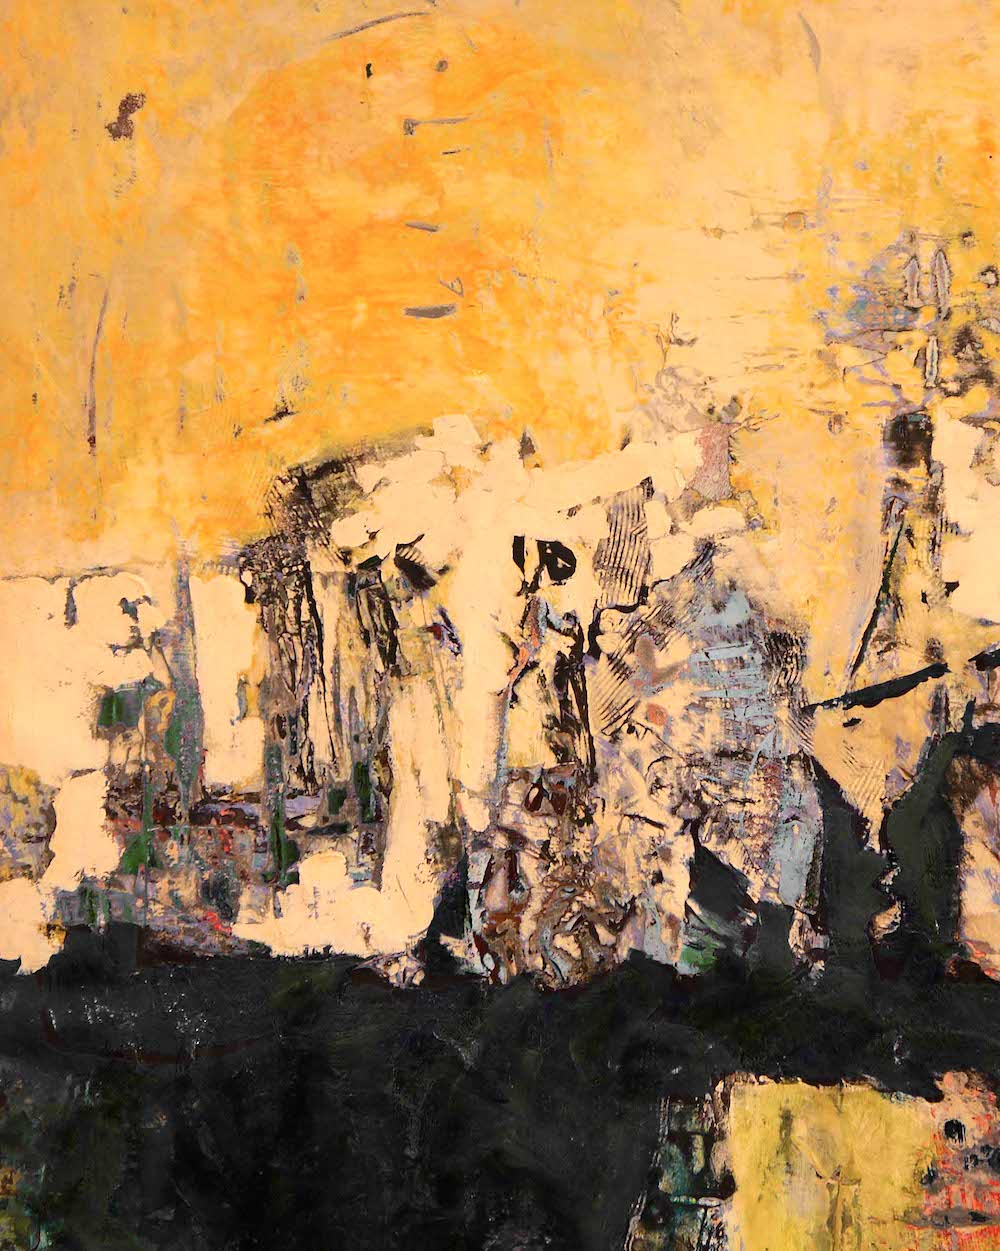 an abstract painting layered in yellows and blacks